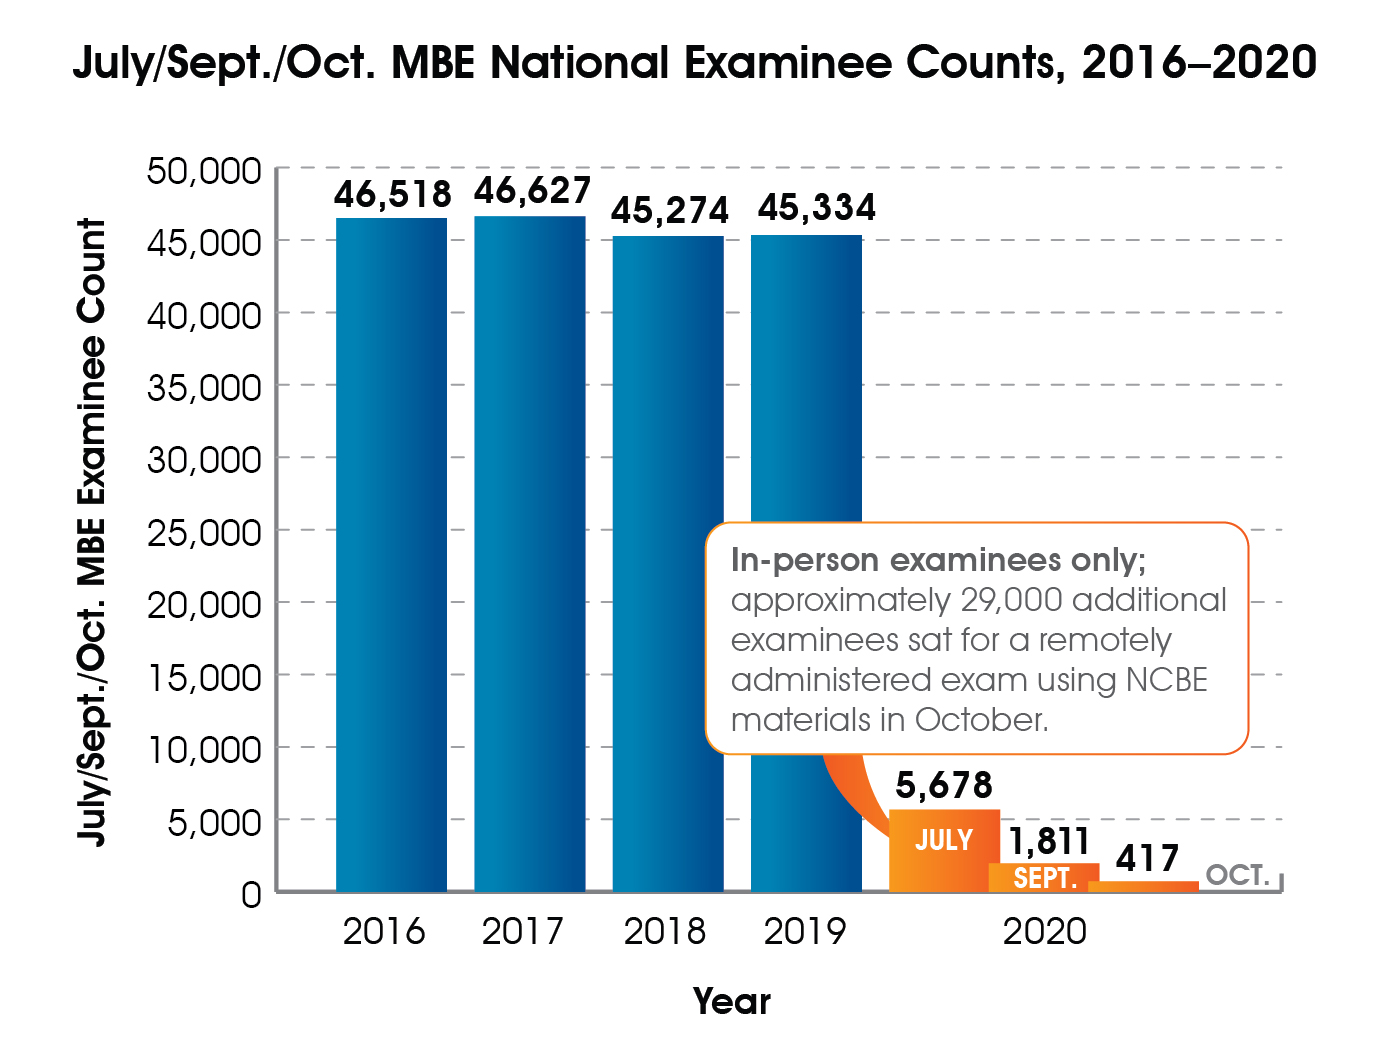 A bar graph of July, September, and October MBE national examinee counts, 2016-2020. 2016 = 46,518; 2017 = 46,627; 2018 = 45,274; 2019 = 45,334; July 2020 = 5,678; September 2020 = 1,811; October 2020 = 417. Approximately 29,000 additional examinees sat for a remotely administered exam using NCBE materials in October 2020.